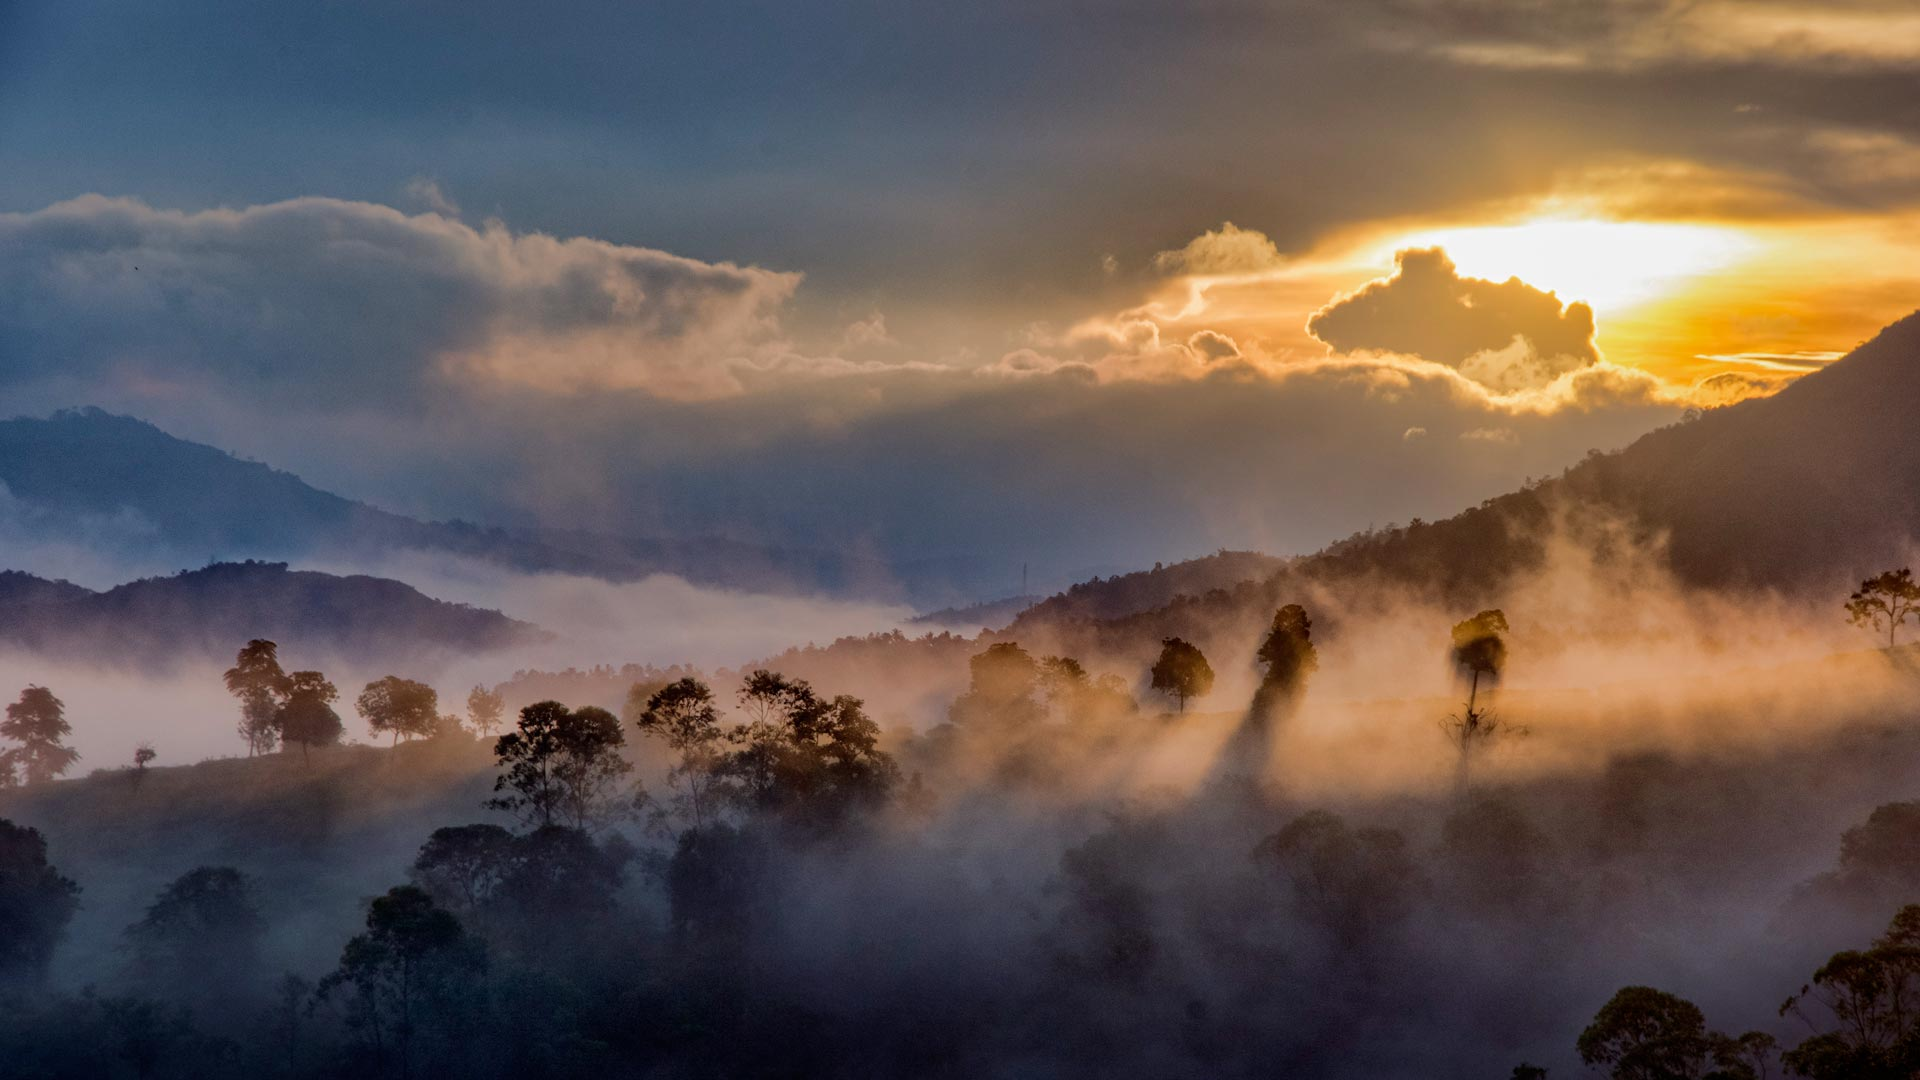 Mist over the forests of Idukki, Western Ghats, Kerala, India (© Getty Images)